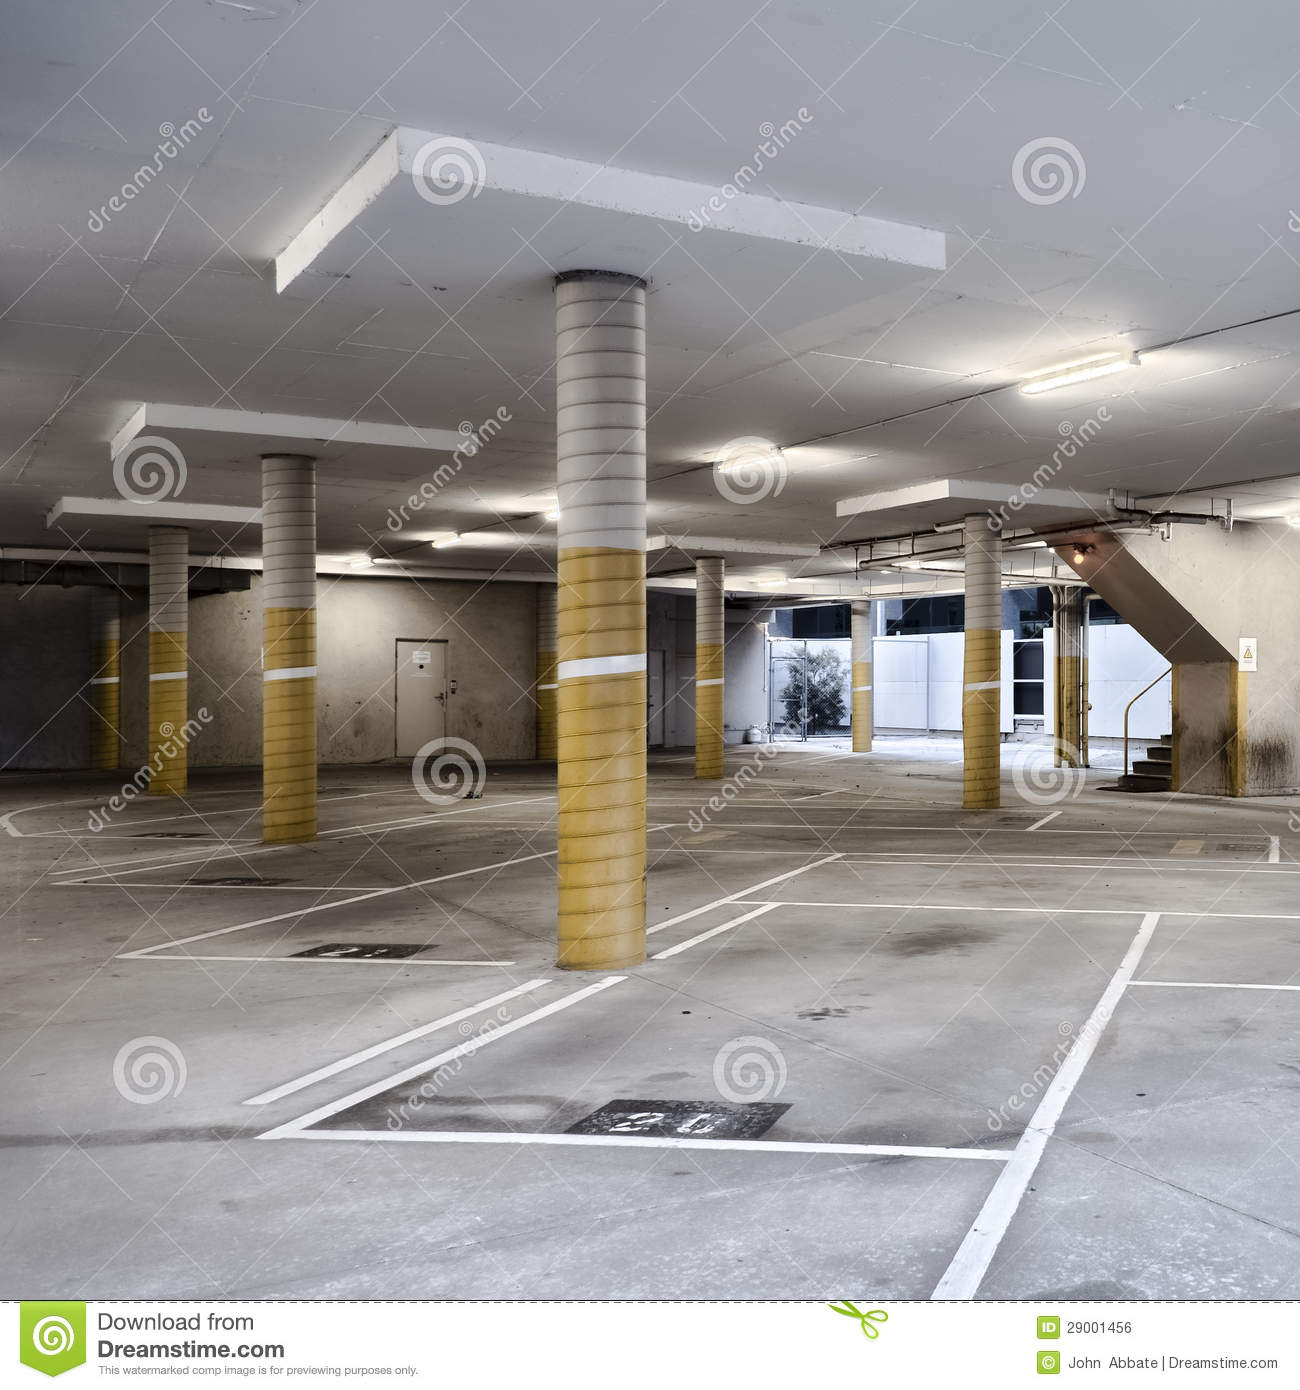 Parking Garage Prices: Empty Parking Undercroft With Yellow Pylons Stock Photo